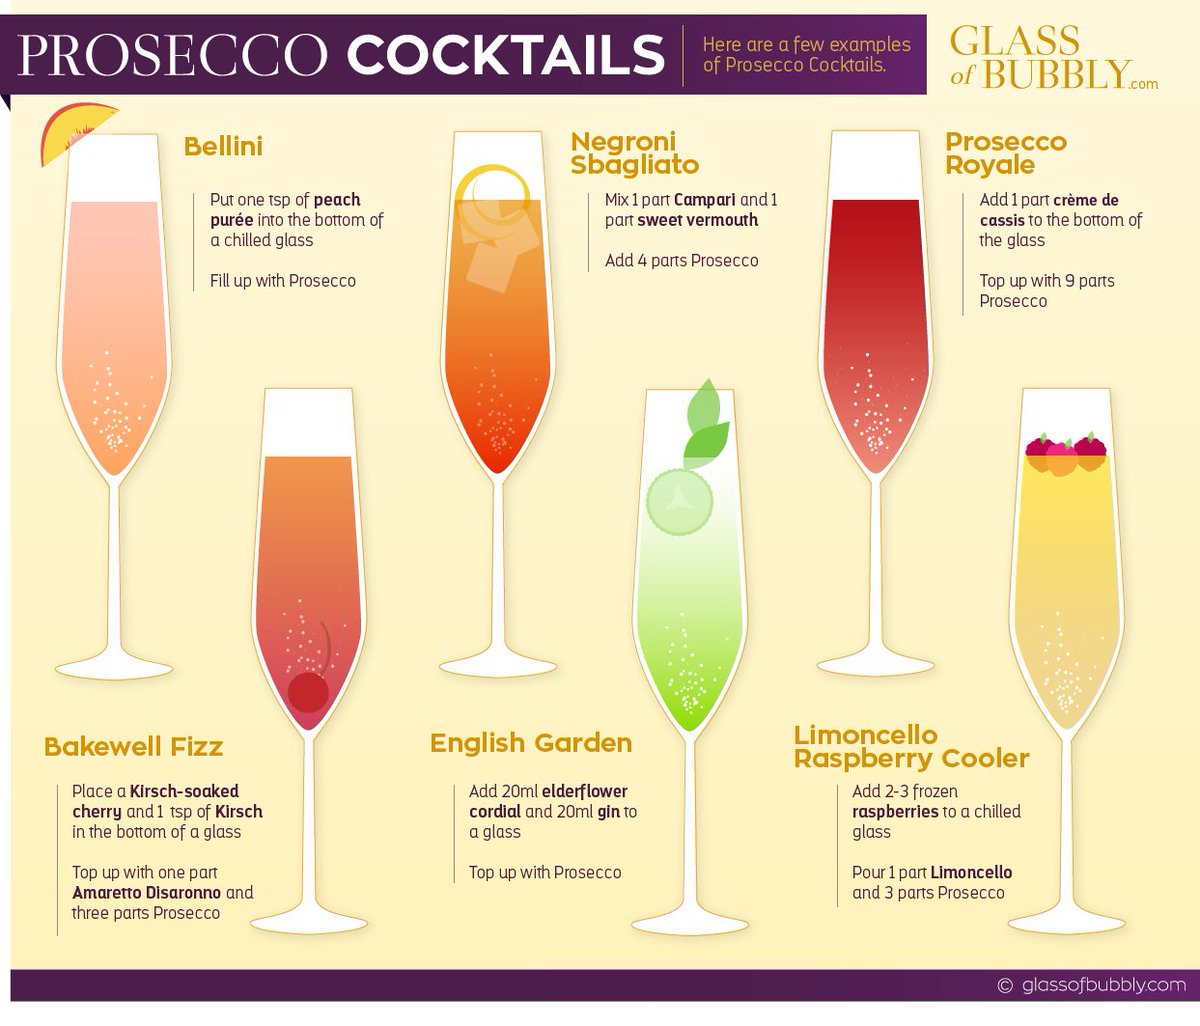 Have you tried any of these #Prosecco cocktails